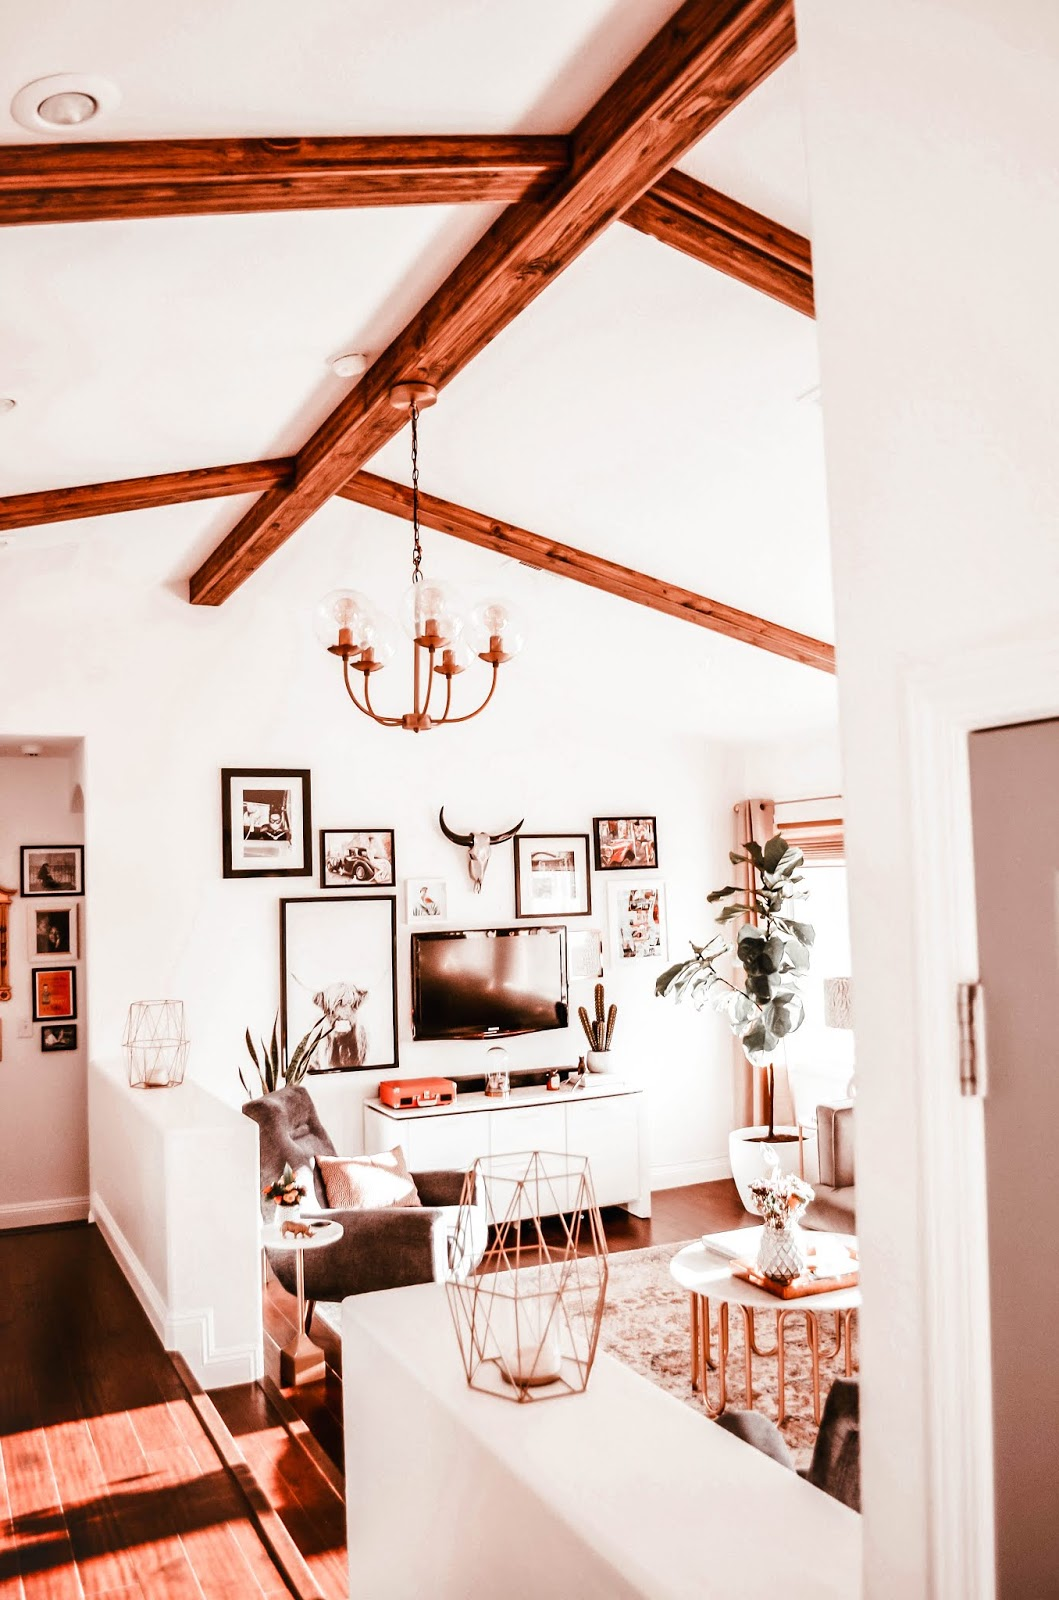 1980s-style-house-livingroom-renovation-update-with-reclaimed-wood-beams-to-cathedral-ceilings